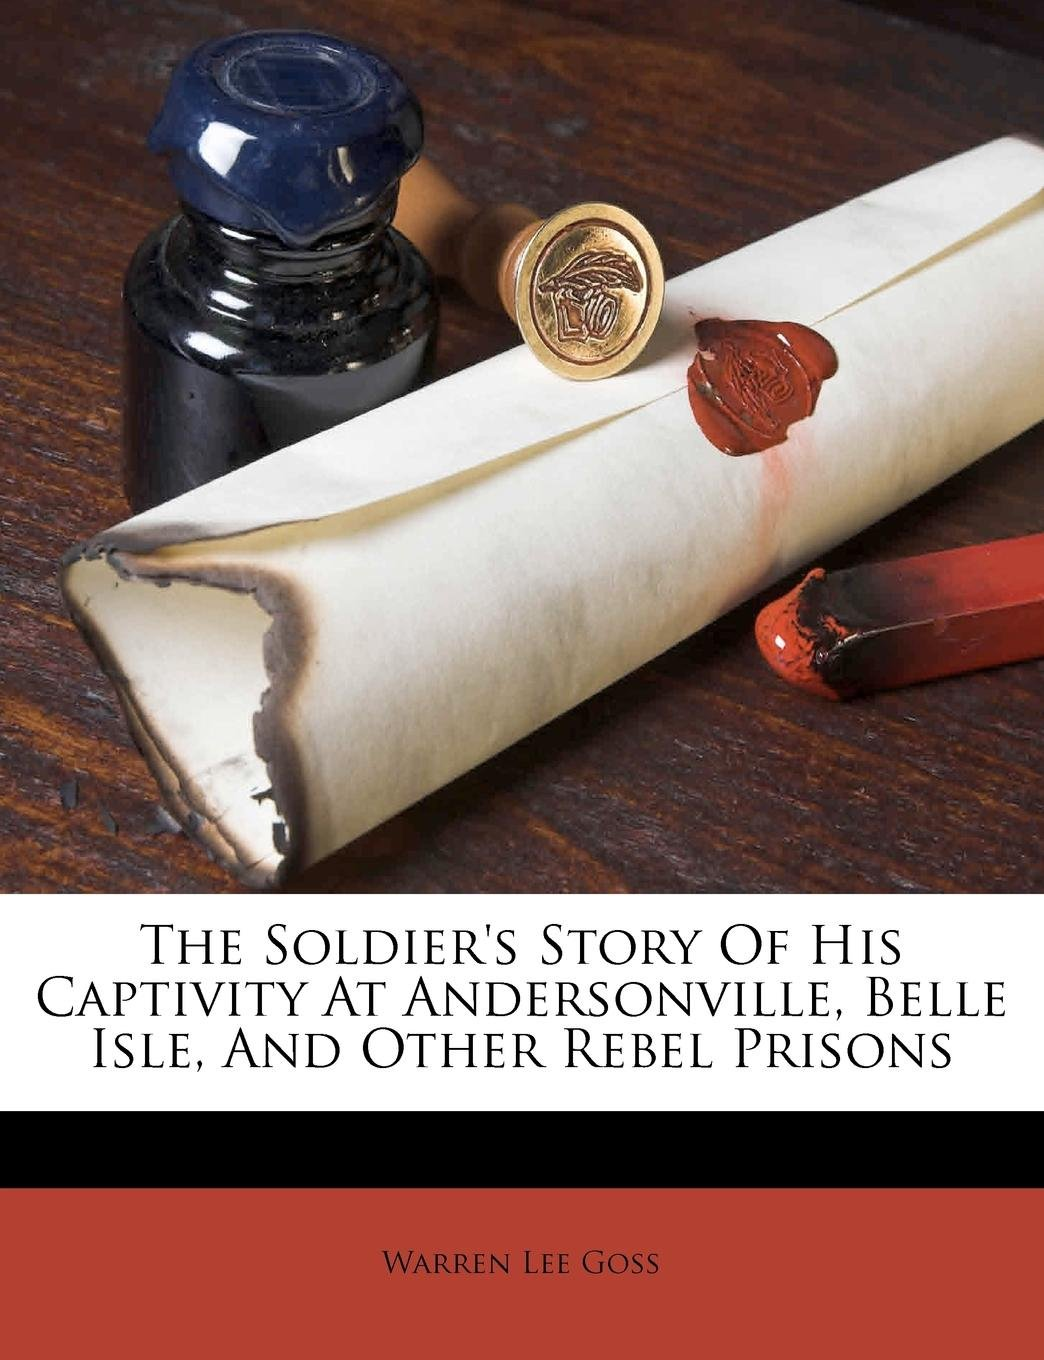 Download The Soldier's Story Of His Captivity At Andersonville, Belle Isle, And Other Rebel Prisons PDF